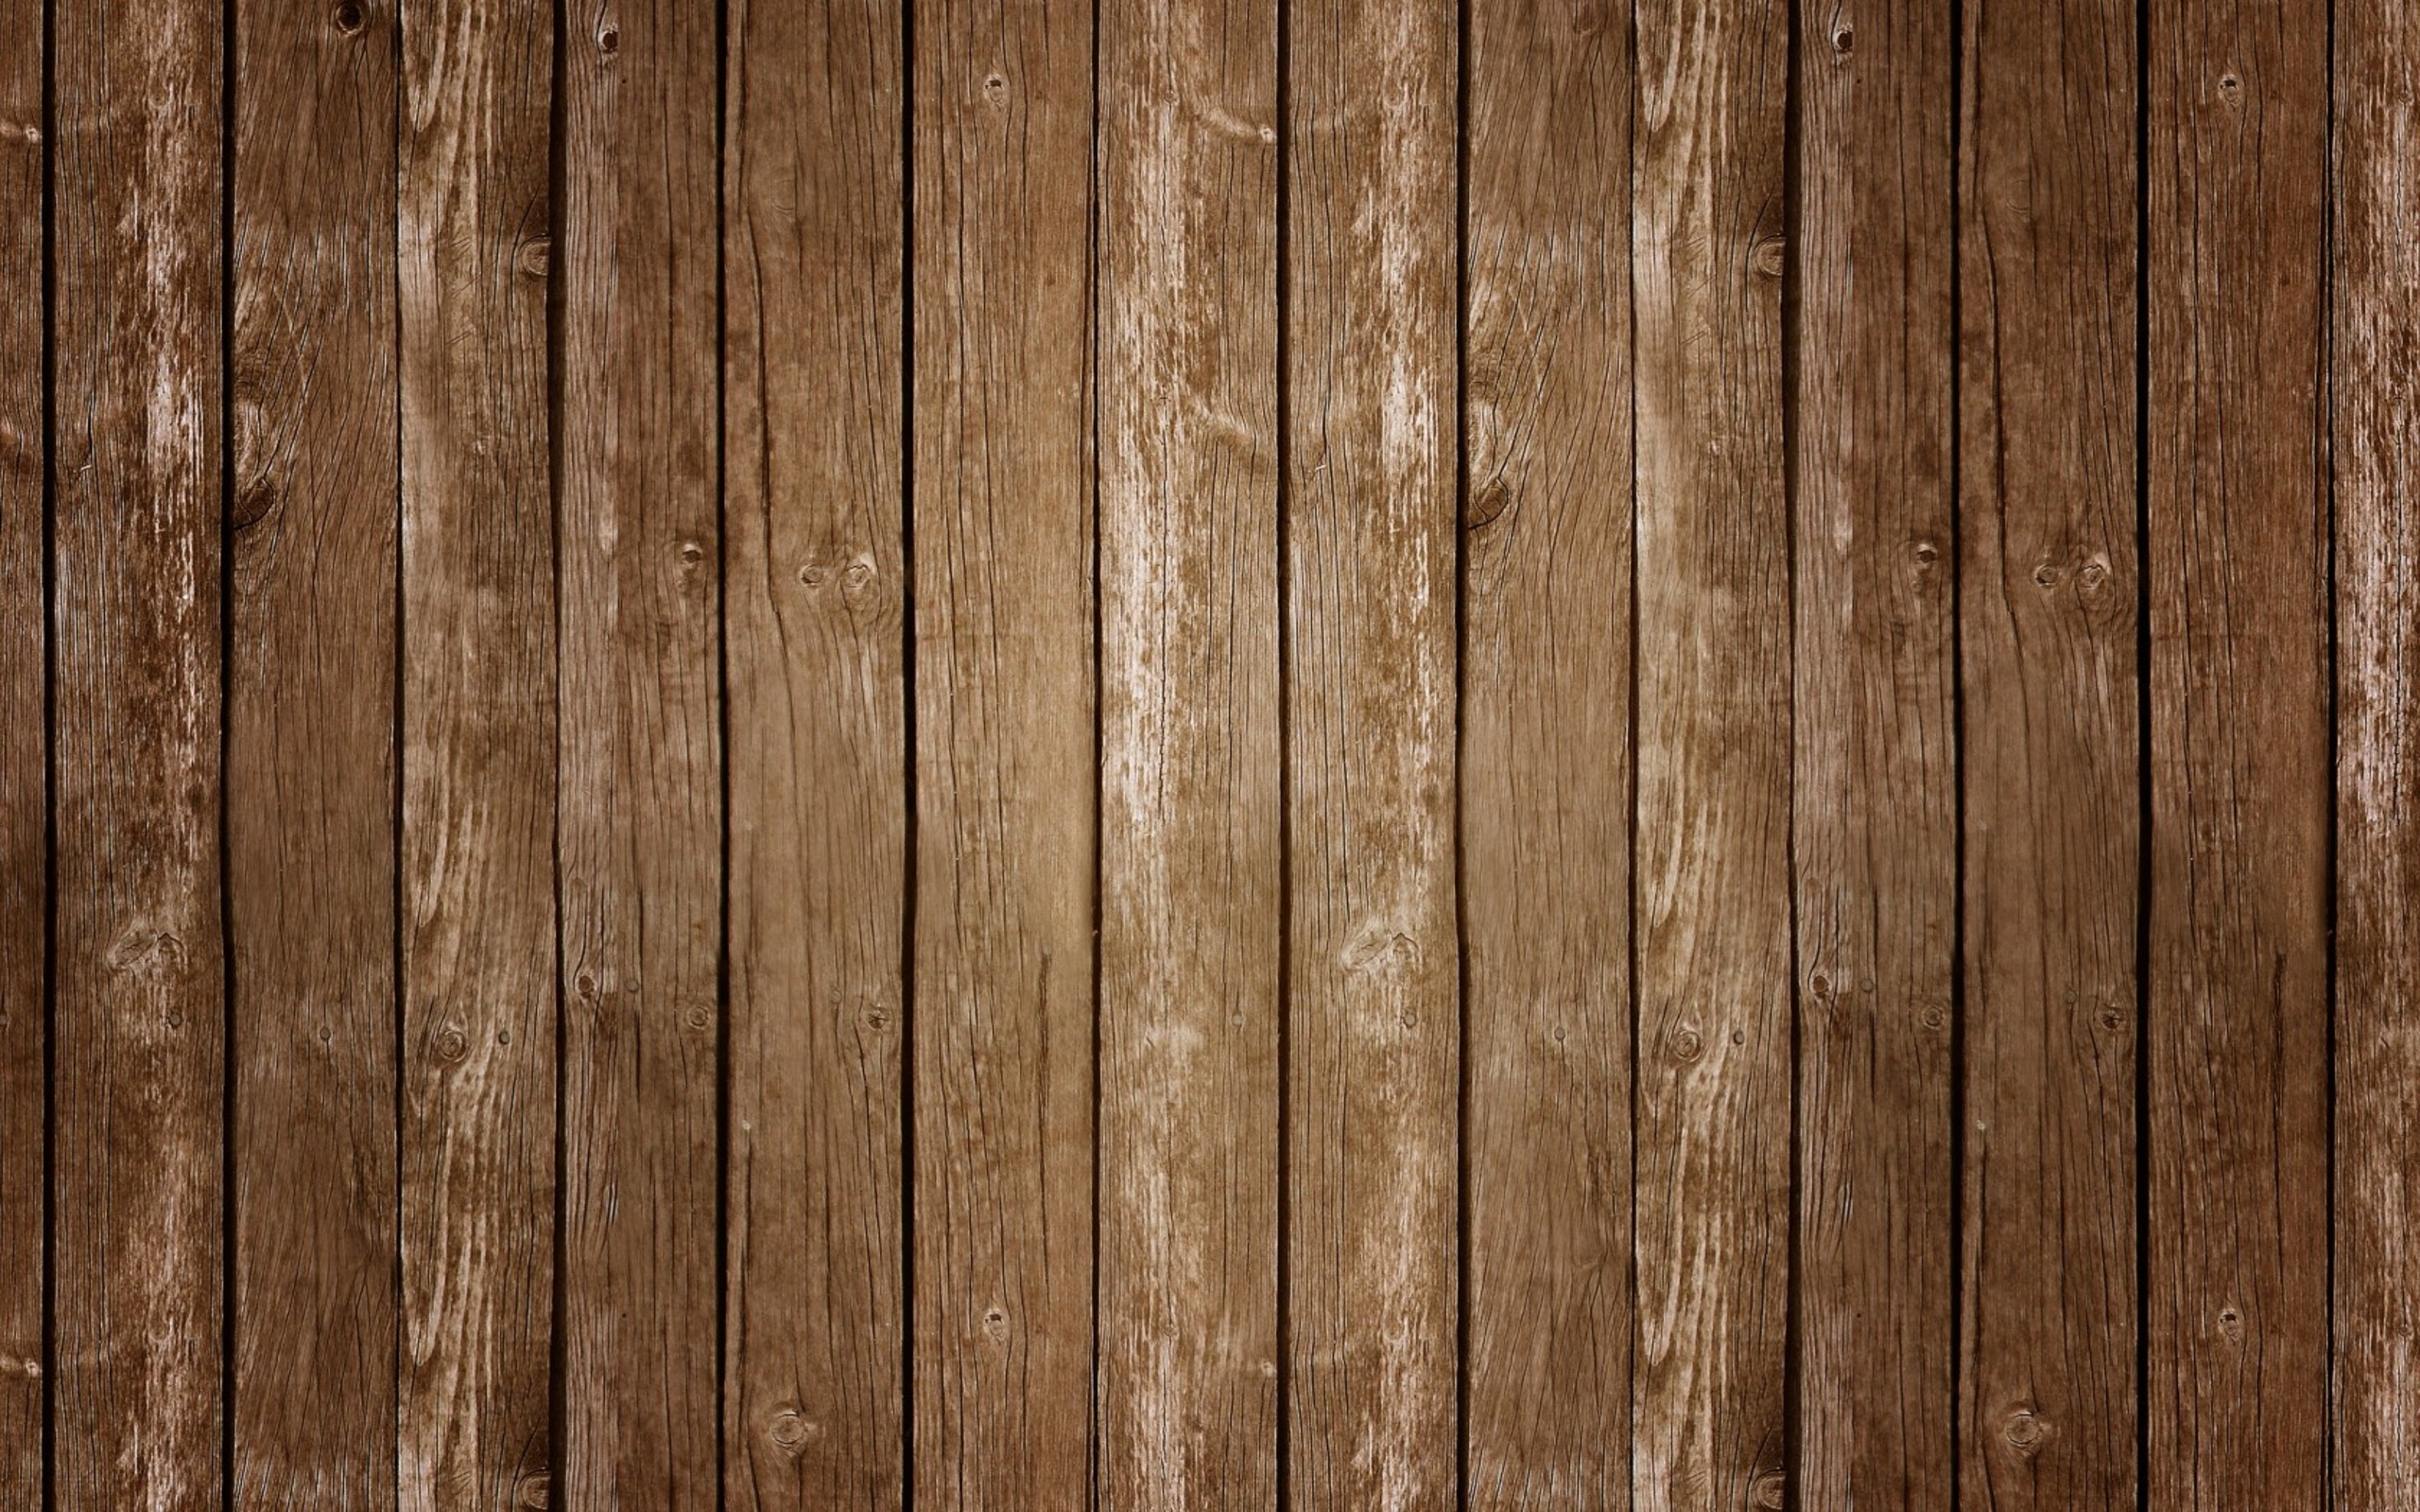 wood wallpaper 3 2560x1600